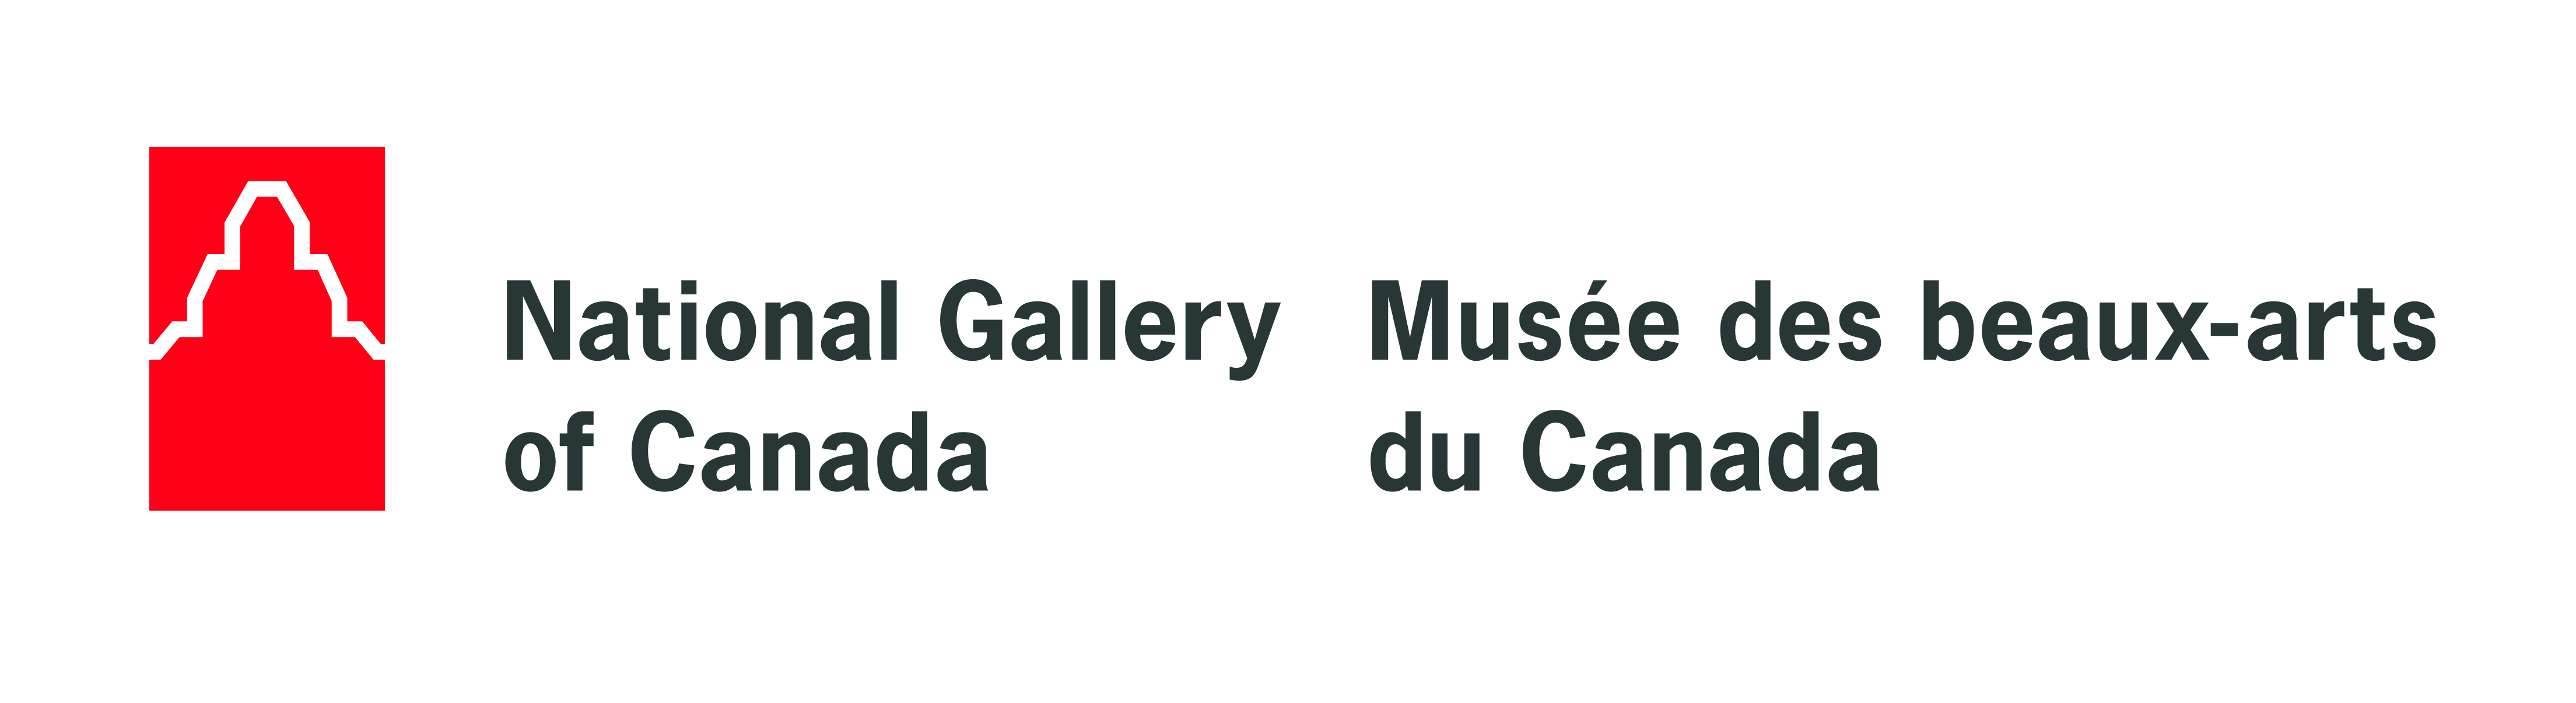 National Gallery of Canada / Musée des beaux-arts du Canada